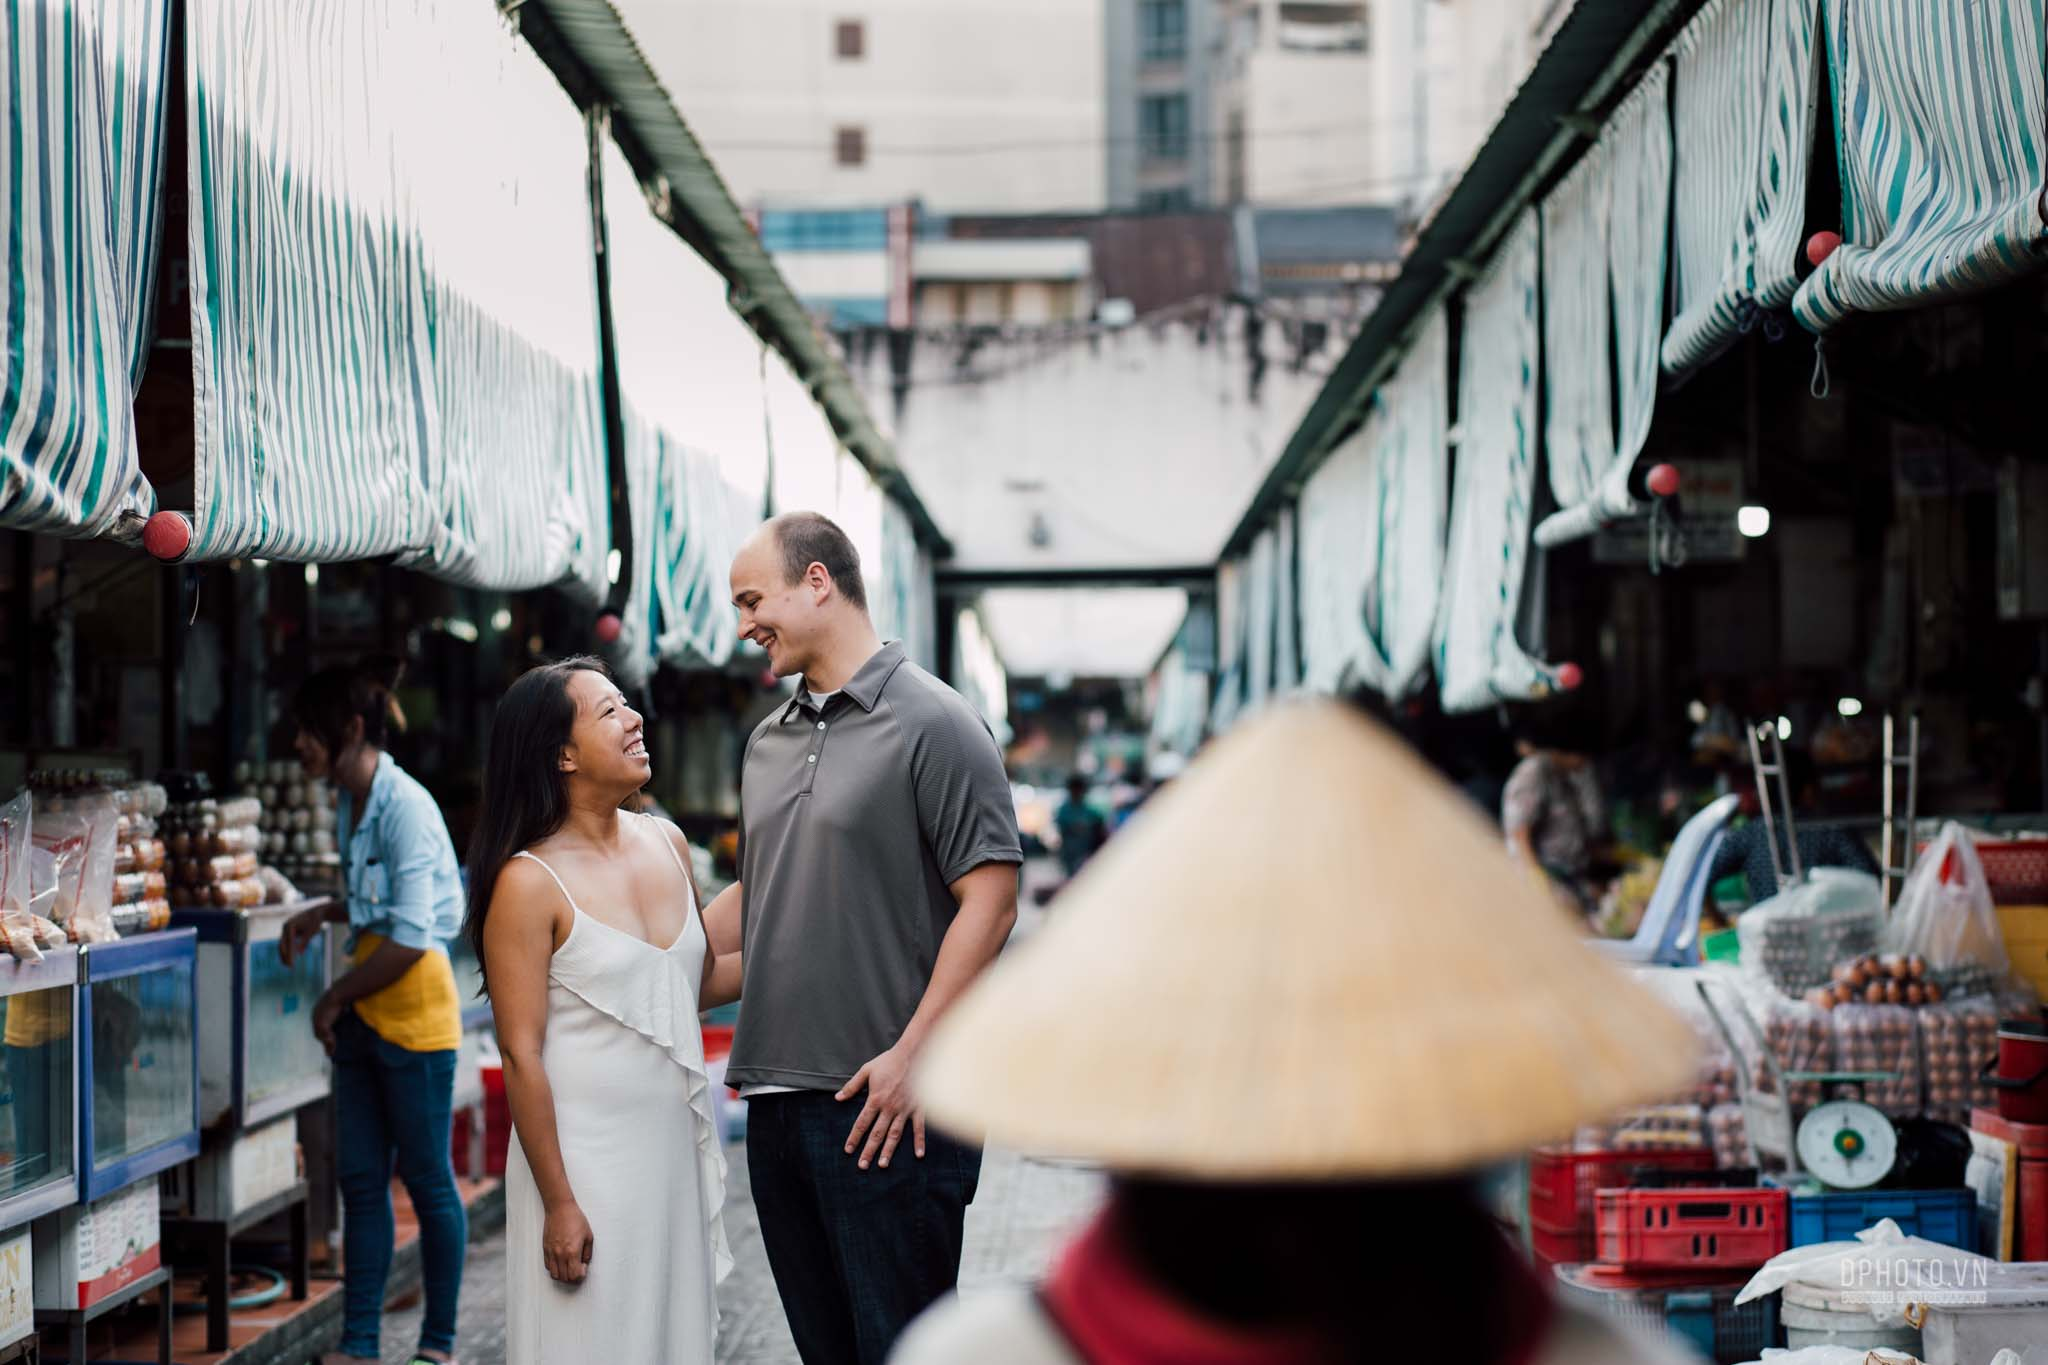 engagement photos in saigon vietnam